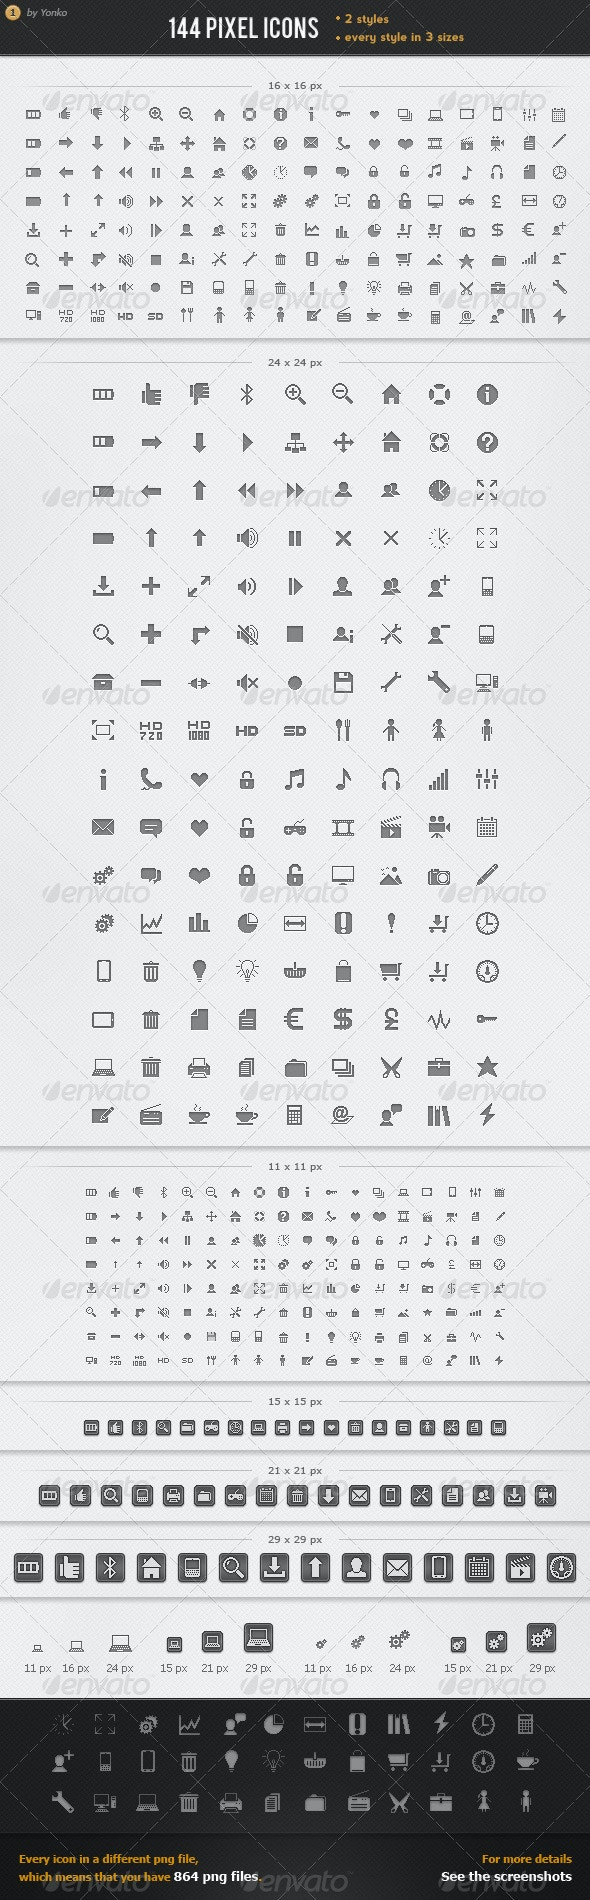 144 Pixel Icons Pack - Web Icons